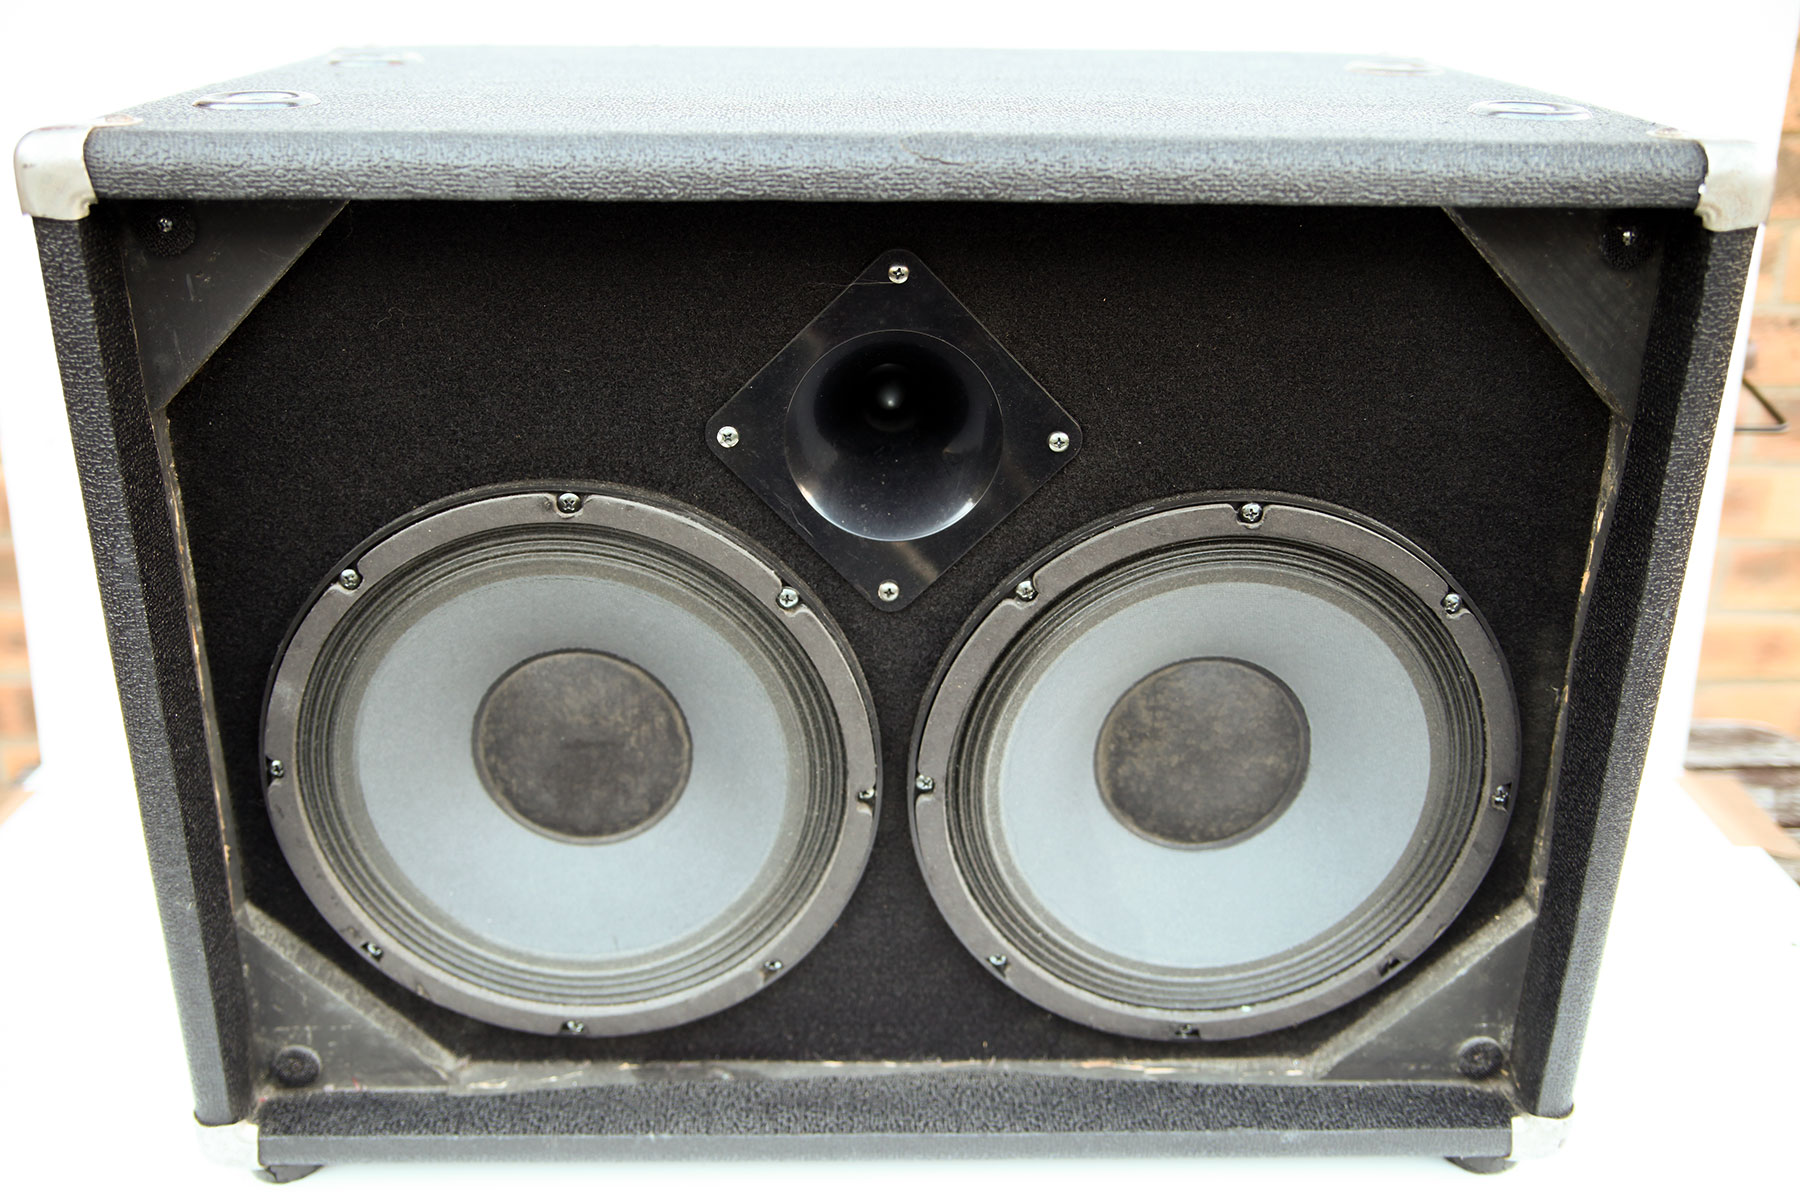 Dating Ampeg speakers and cabinet